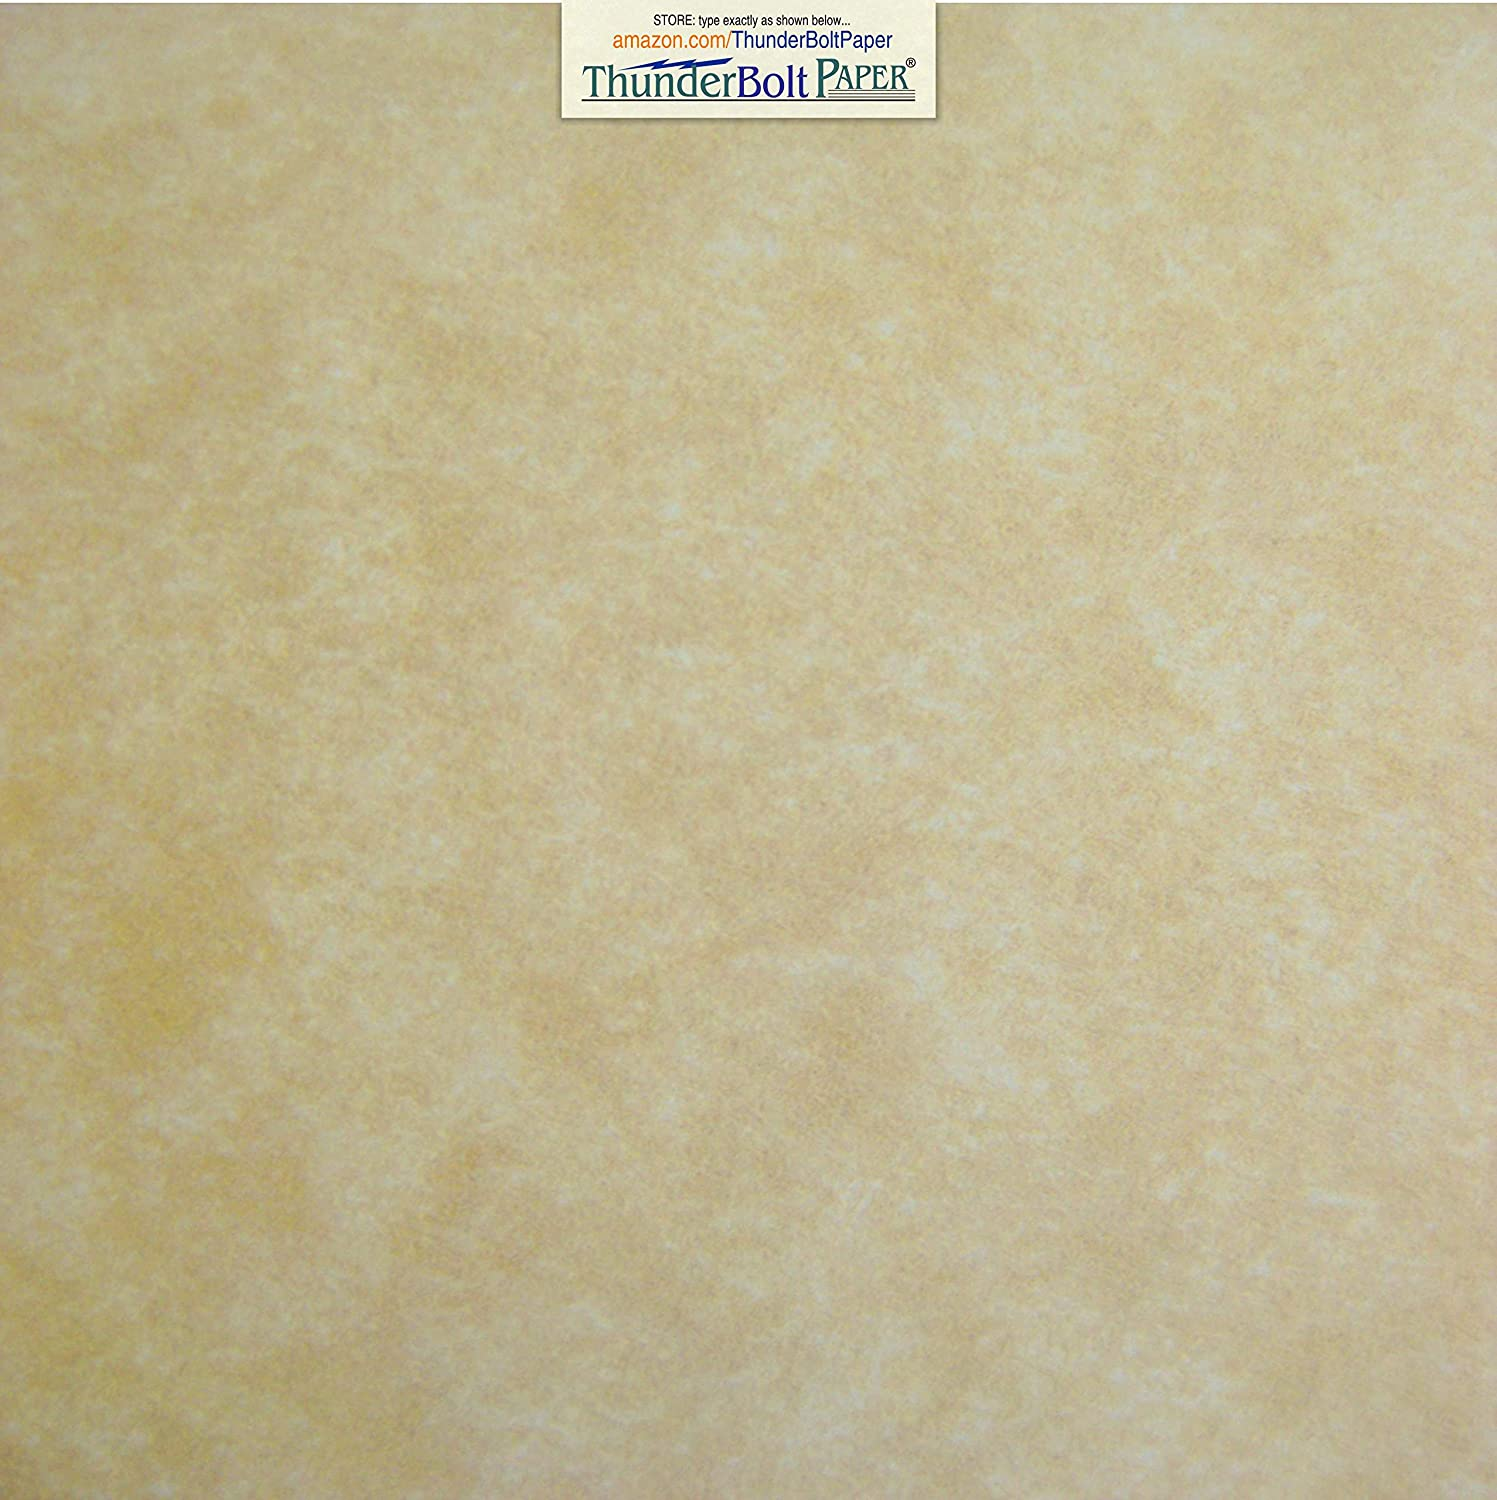 Printable Cardstock Colored Sheets Old Parchment Semblance 12 X 12 25 Sandy Brown Parchment 65lb Cover Weight Paper 12X12 Inches Scrapbook Album Cover Size